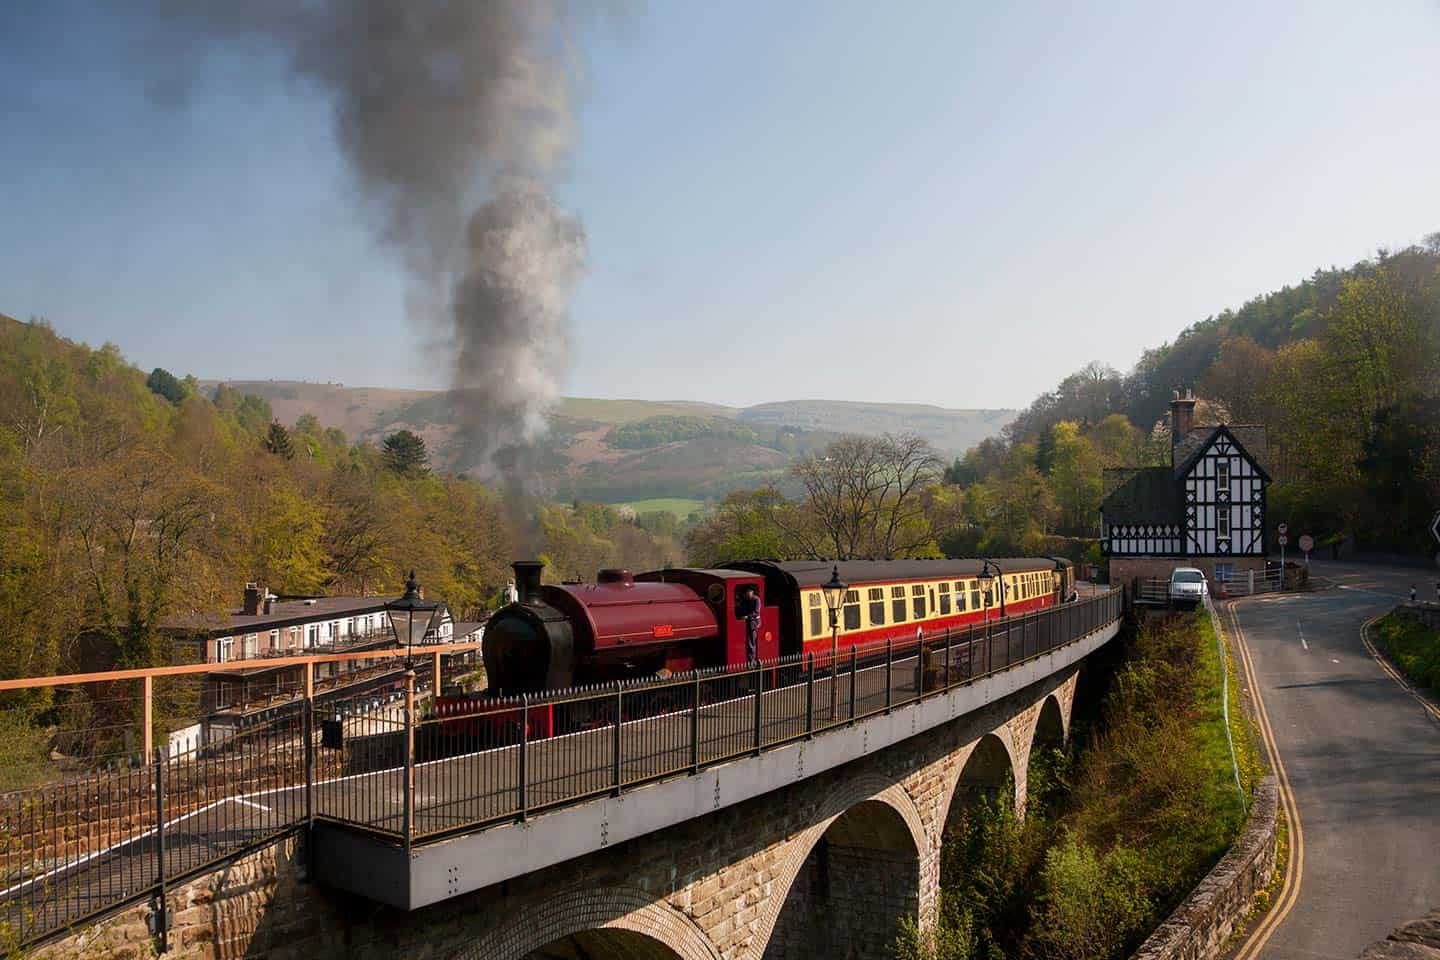 Image of a locomotive from the Llangollen Steam Railway leaving Berwyn Station